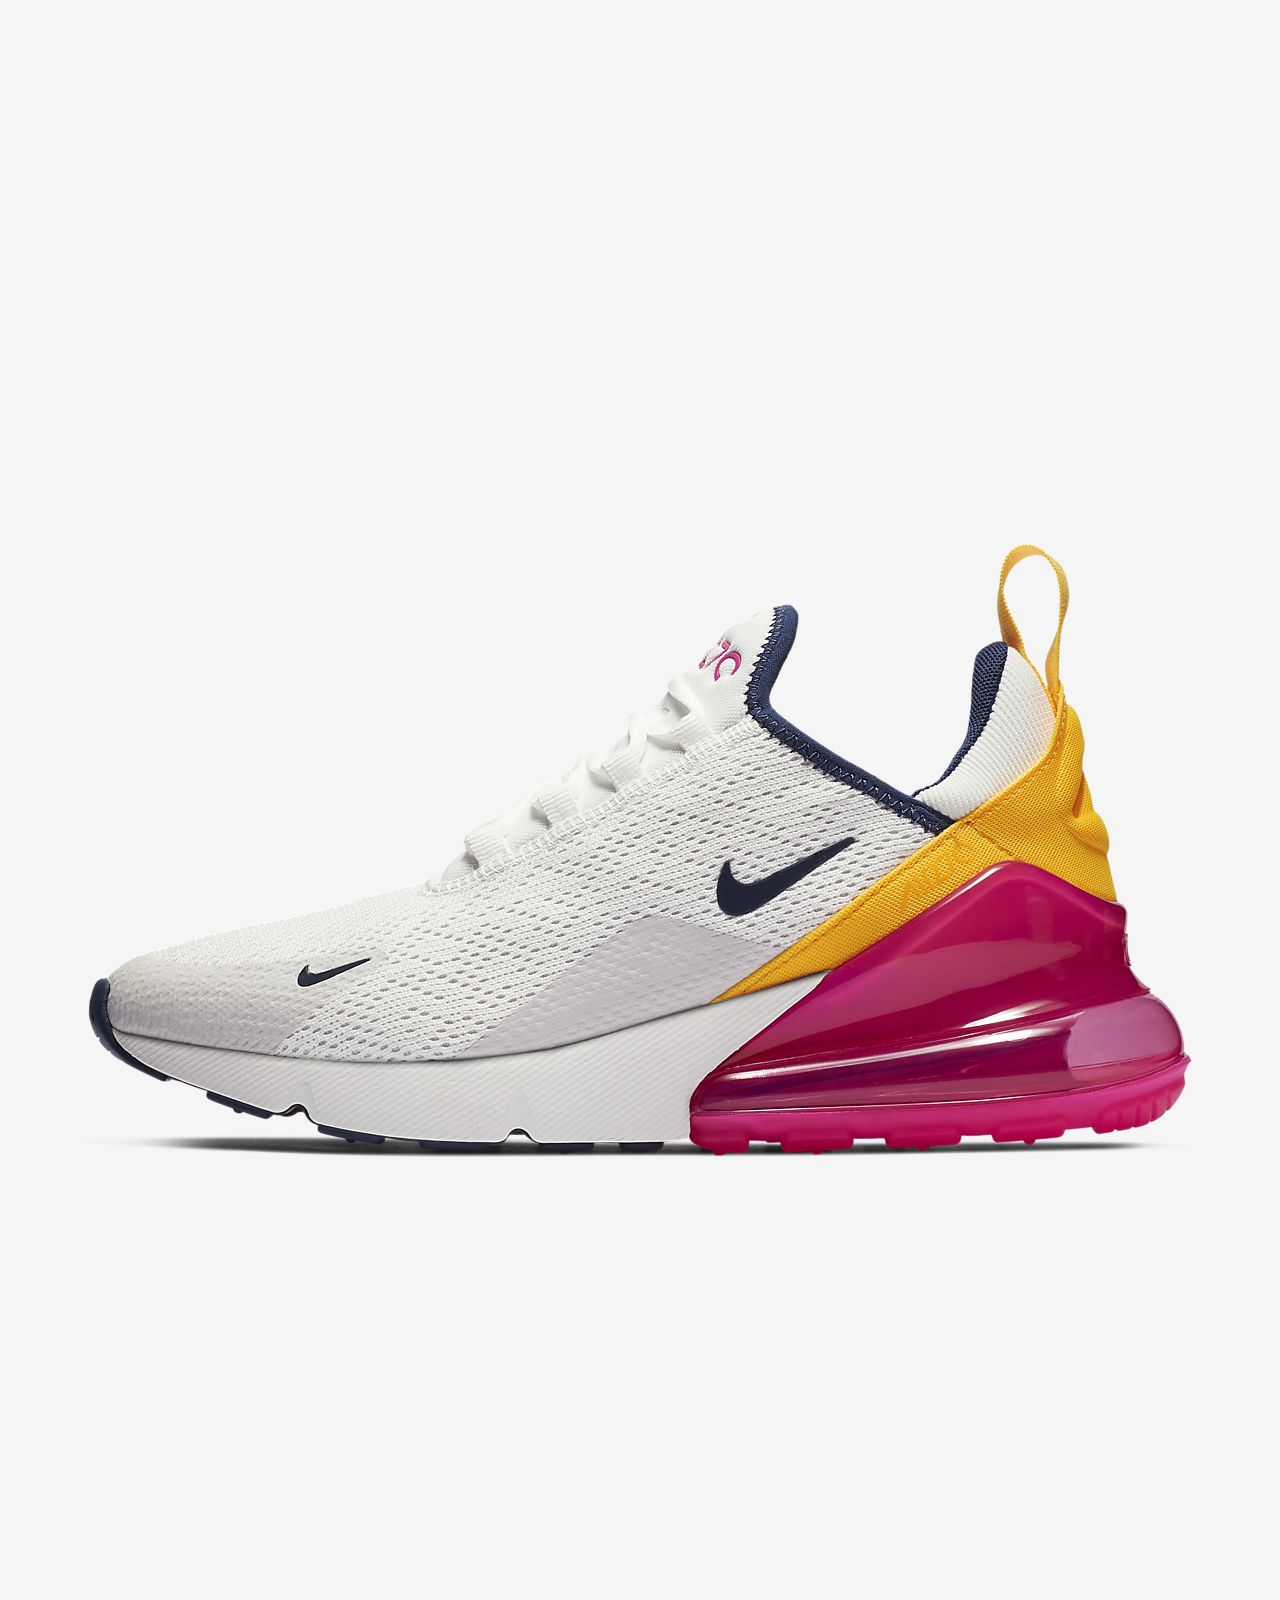 best website a84b8 f5cdf Nike Air Max 270 Premium. 1 819 Dh